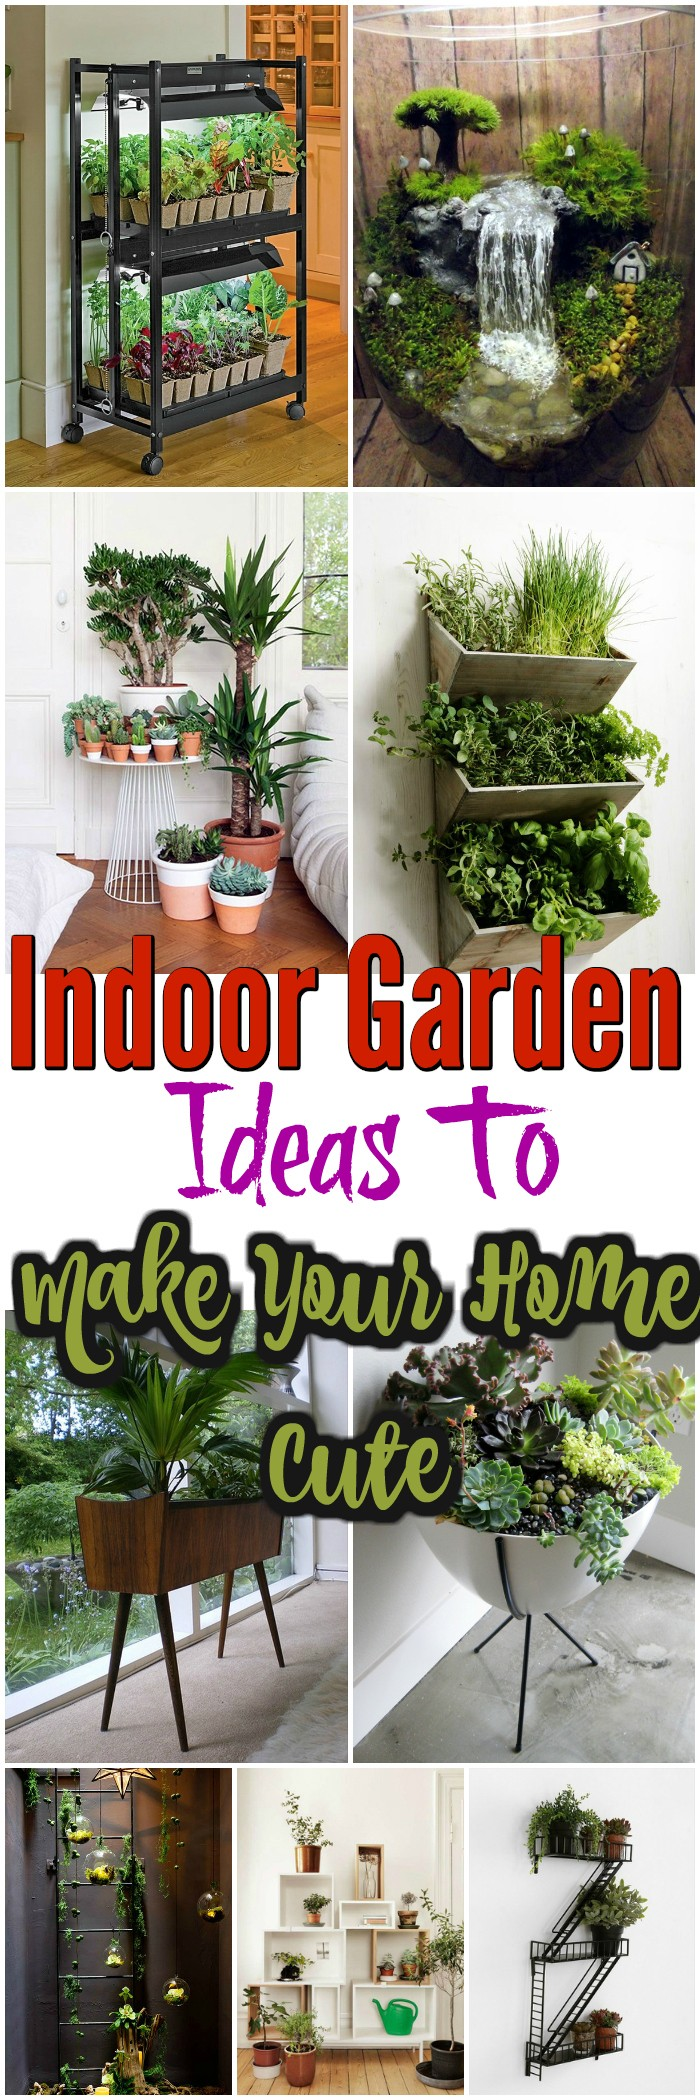 Indoor Garden Ideas 15 Indoor Garden Ideas To Make Your Home Cute